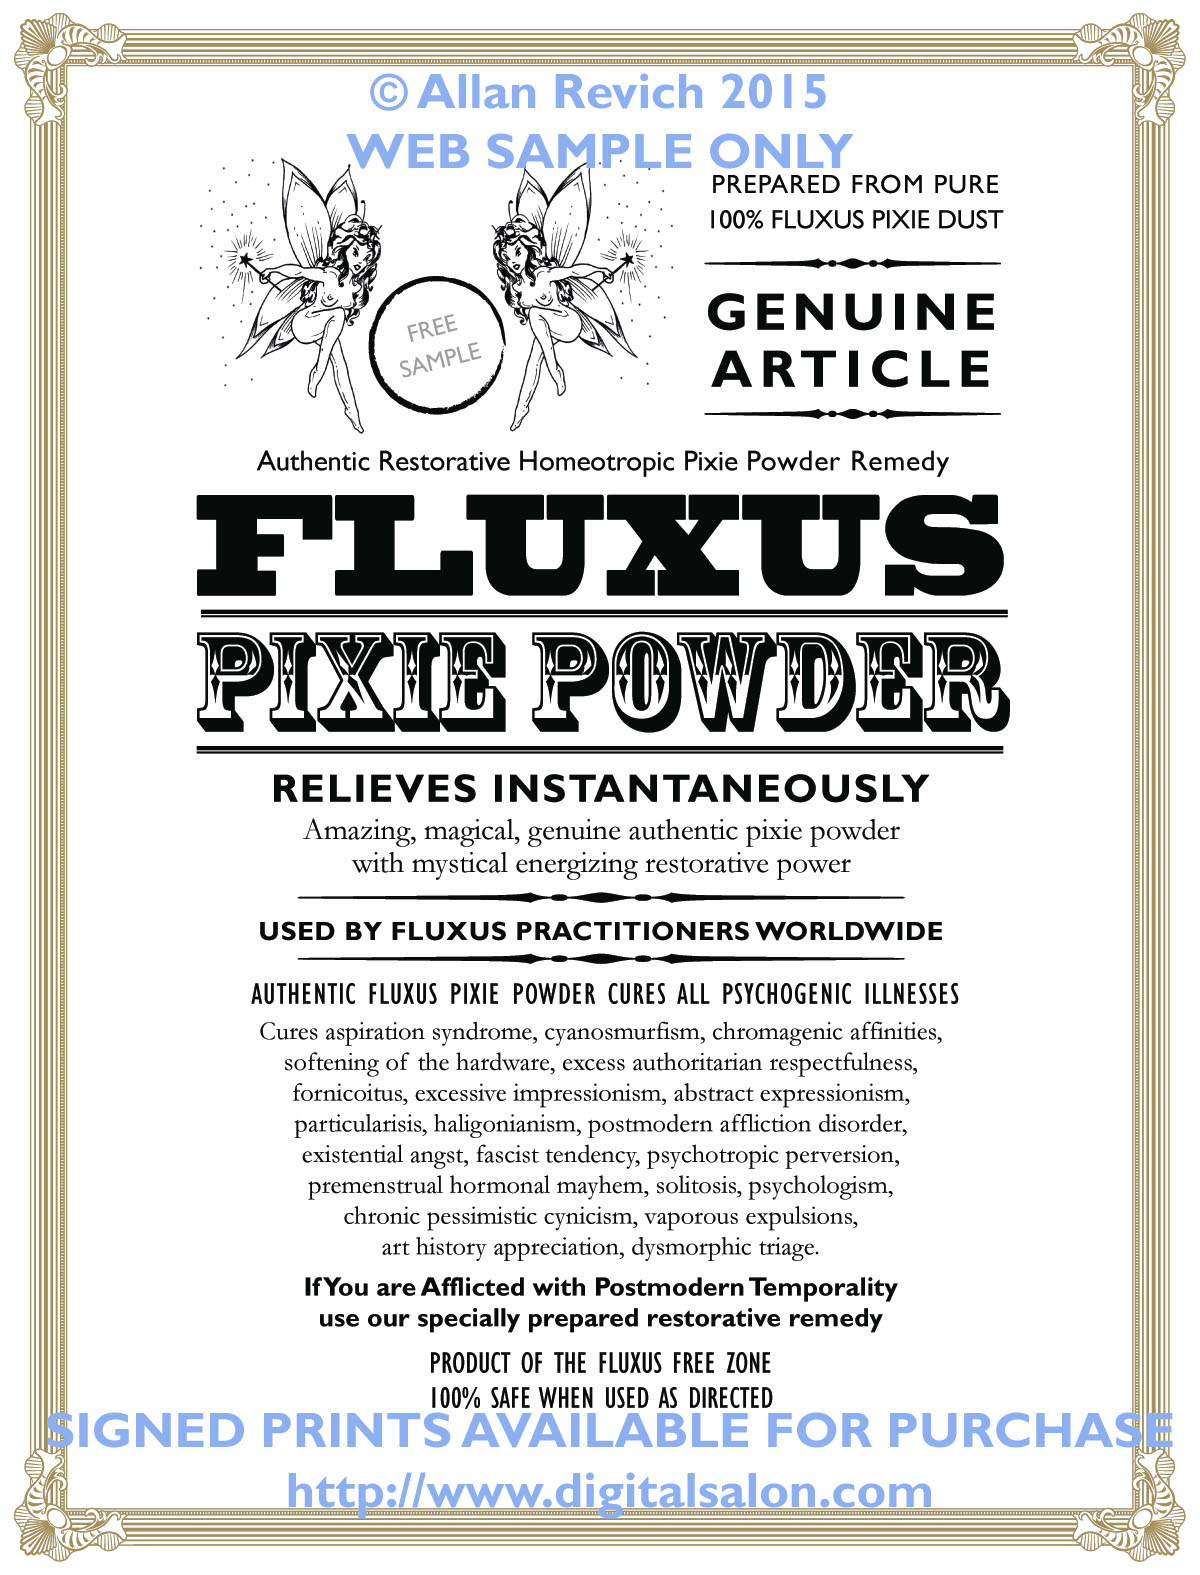 Genuine Authentic Fluxus Pixie Powder